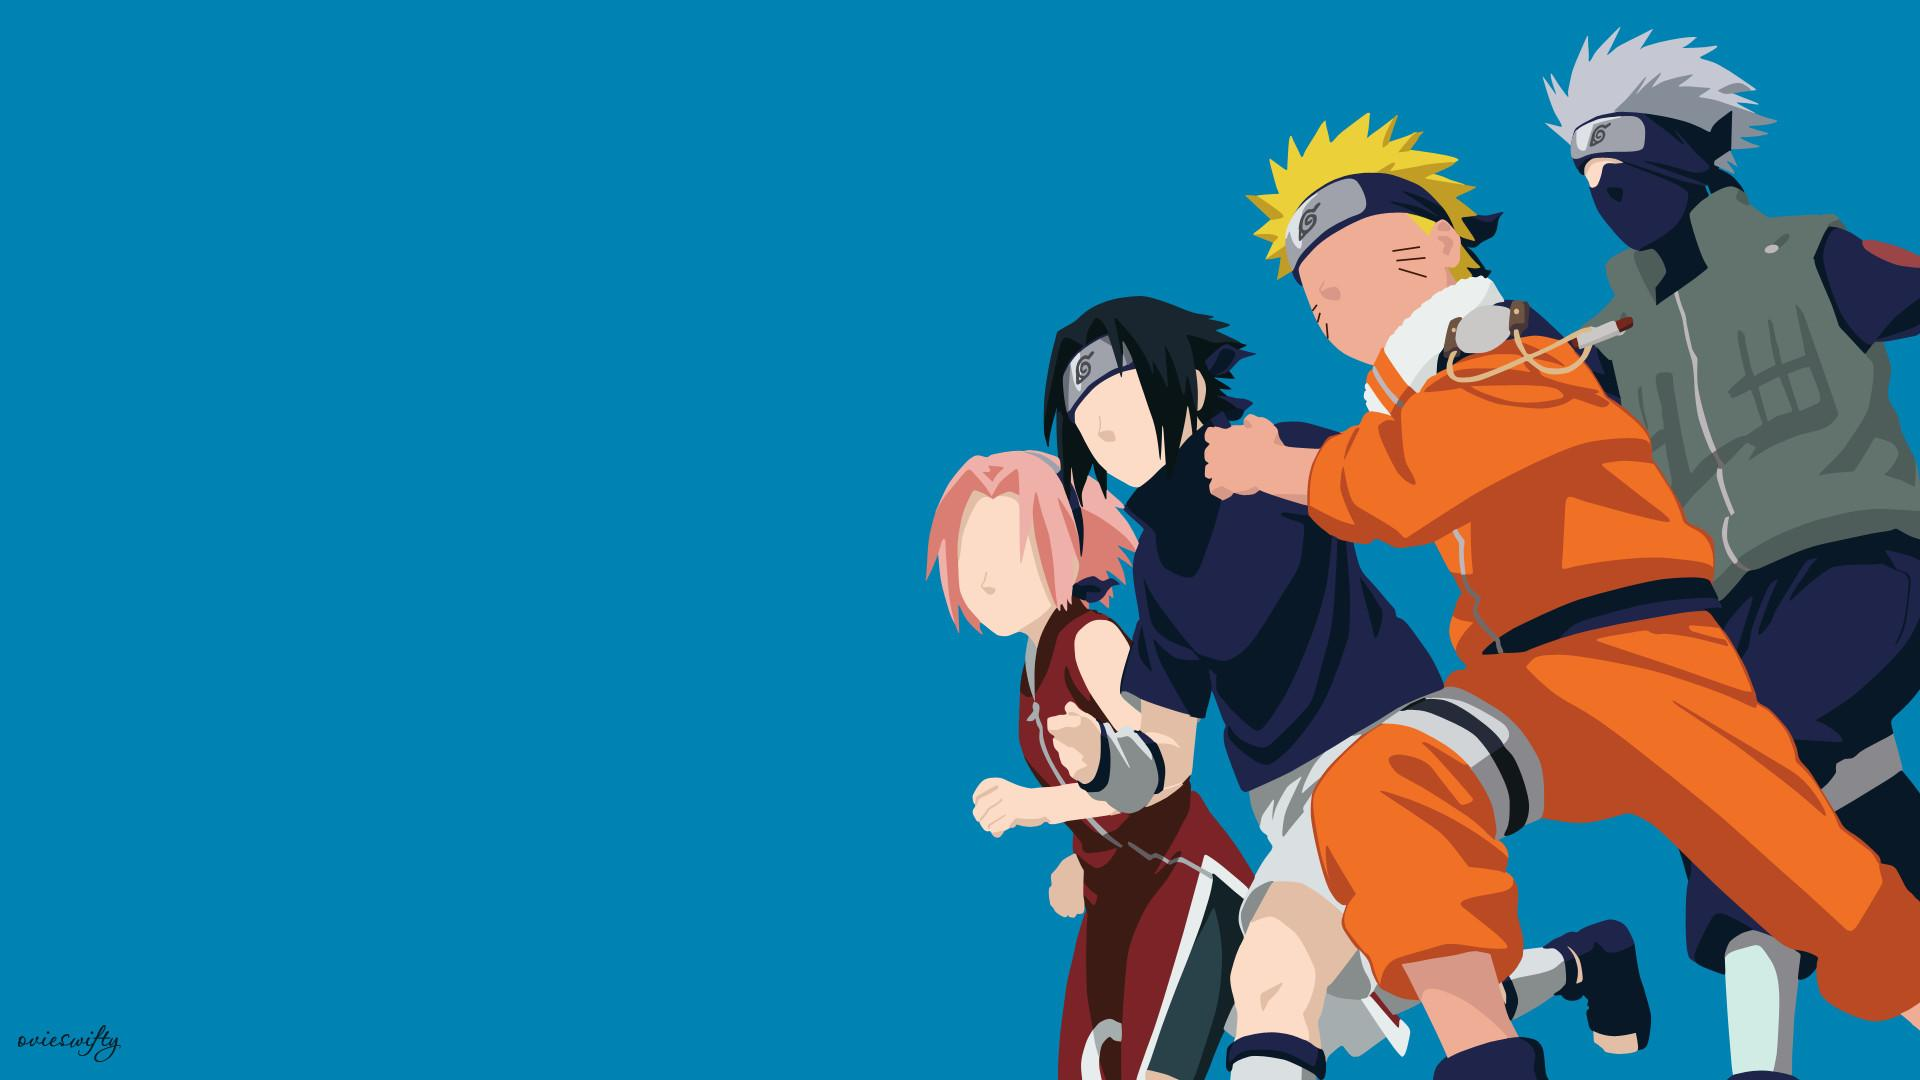 Aesthetic Hd Naruto Desktop Wallpapers Wallpaper Cave